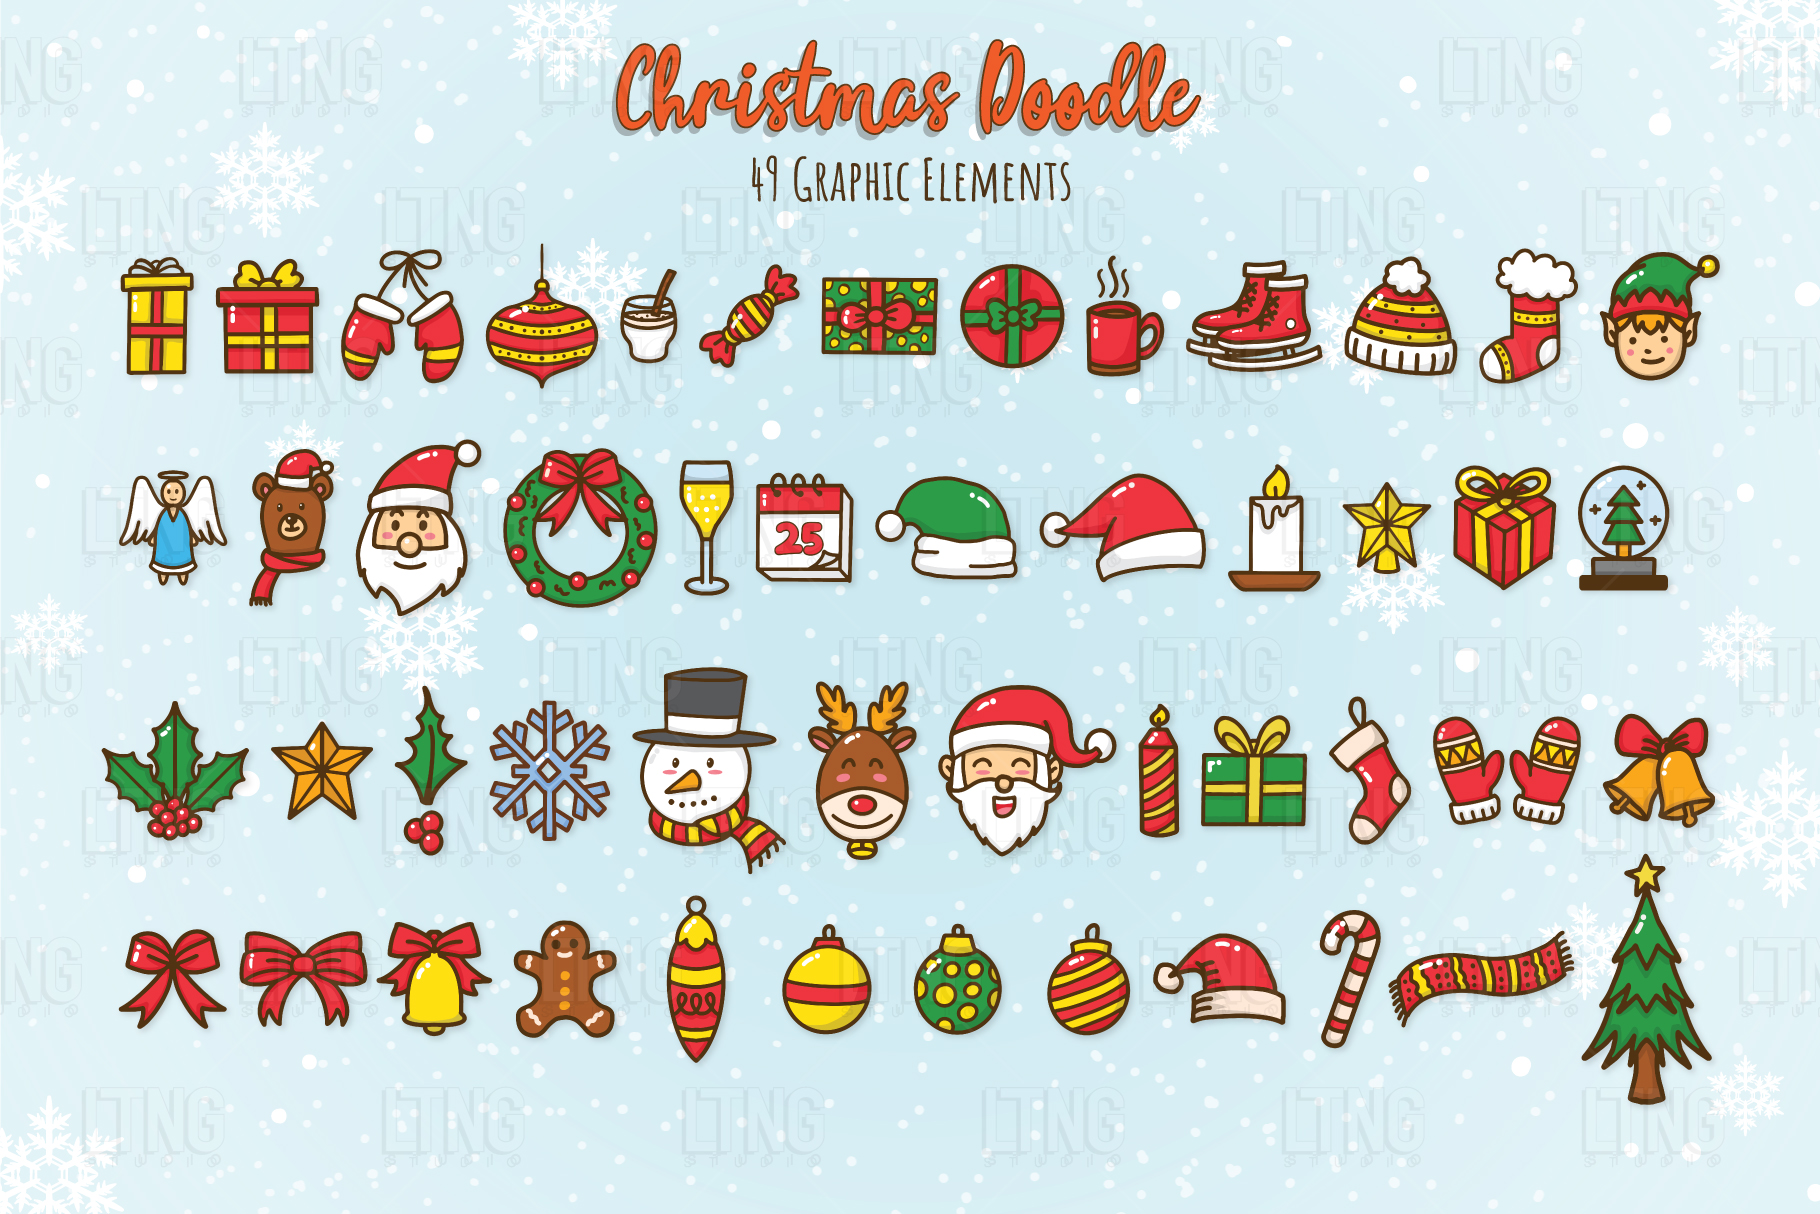 Christmas Doodle Graphic Element Part 1 example image 2